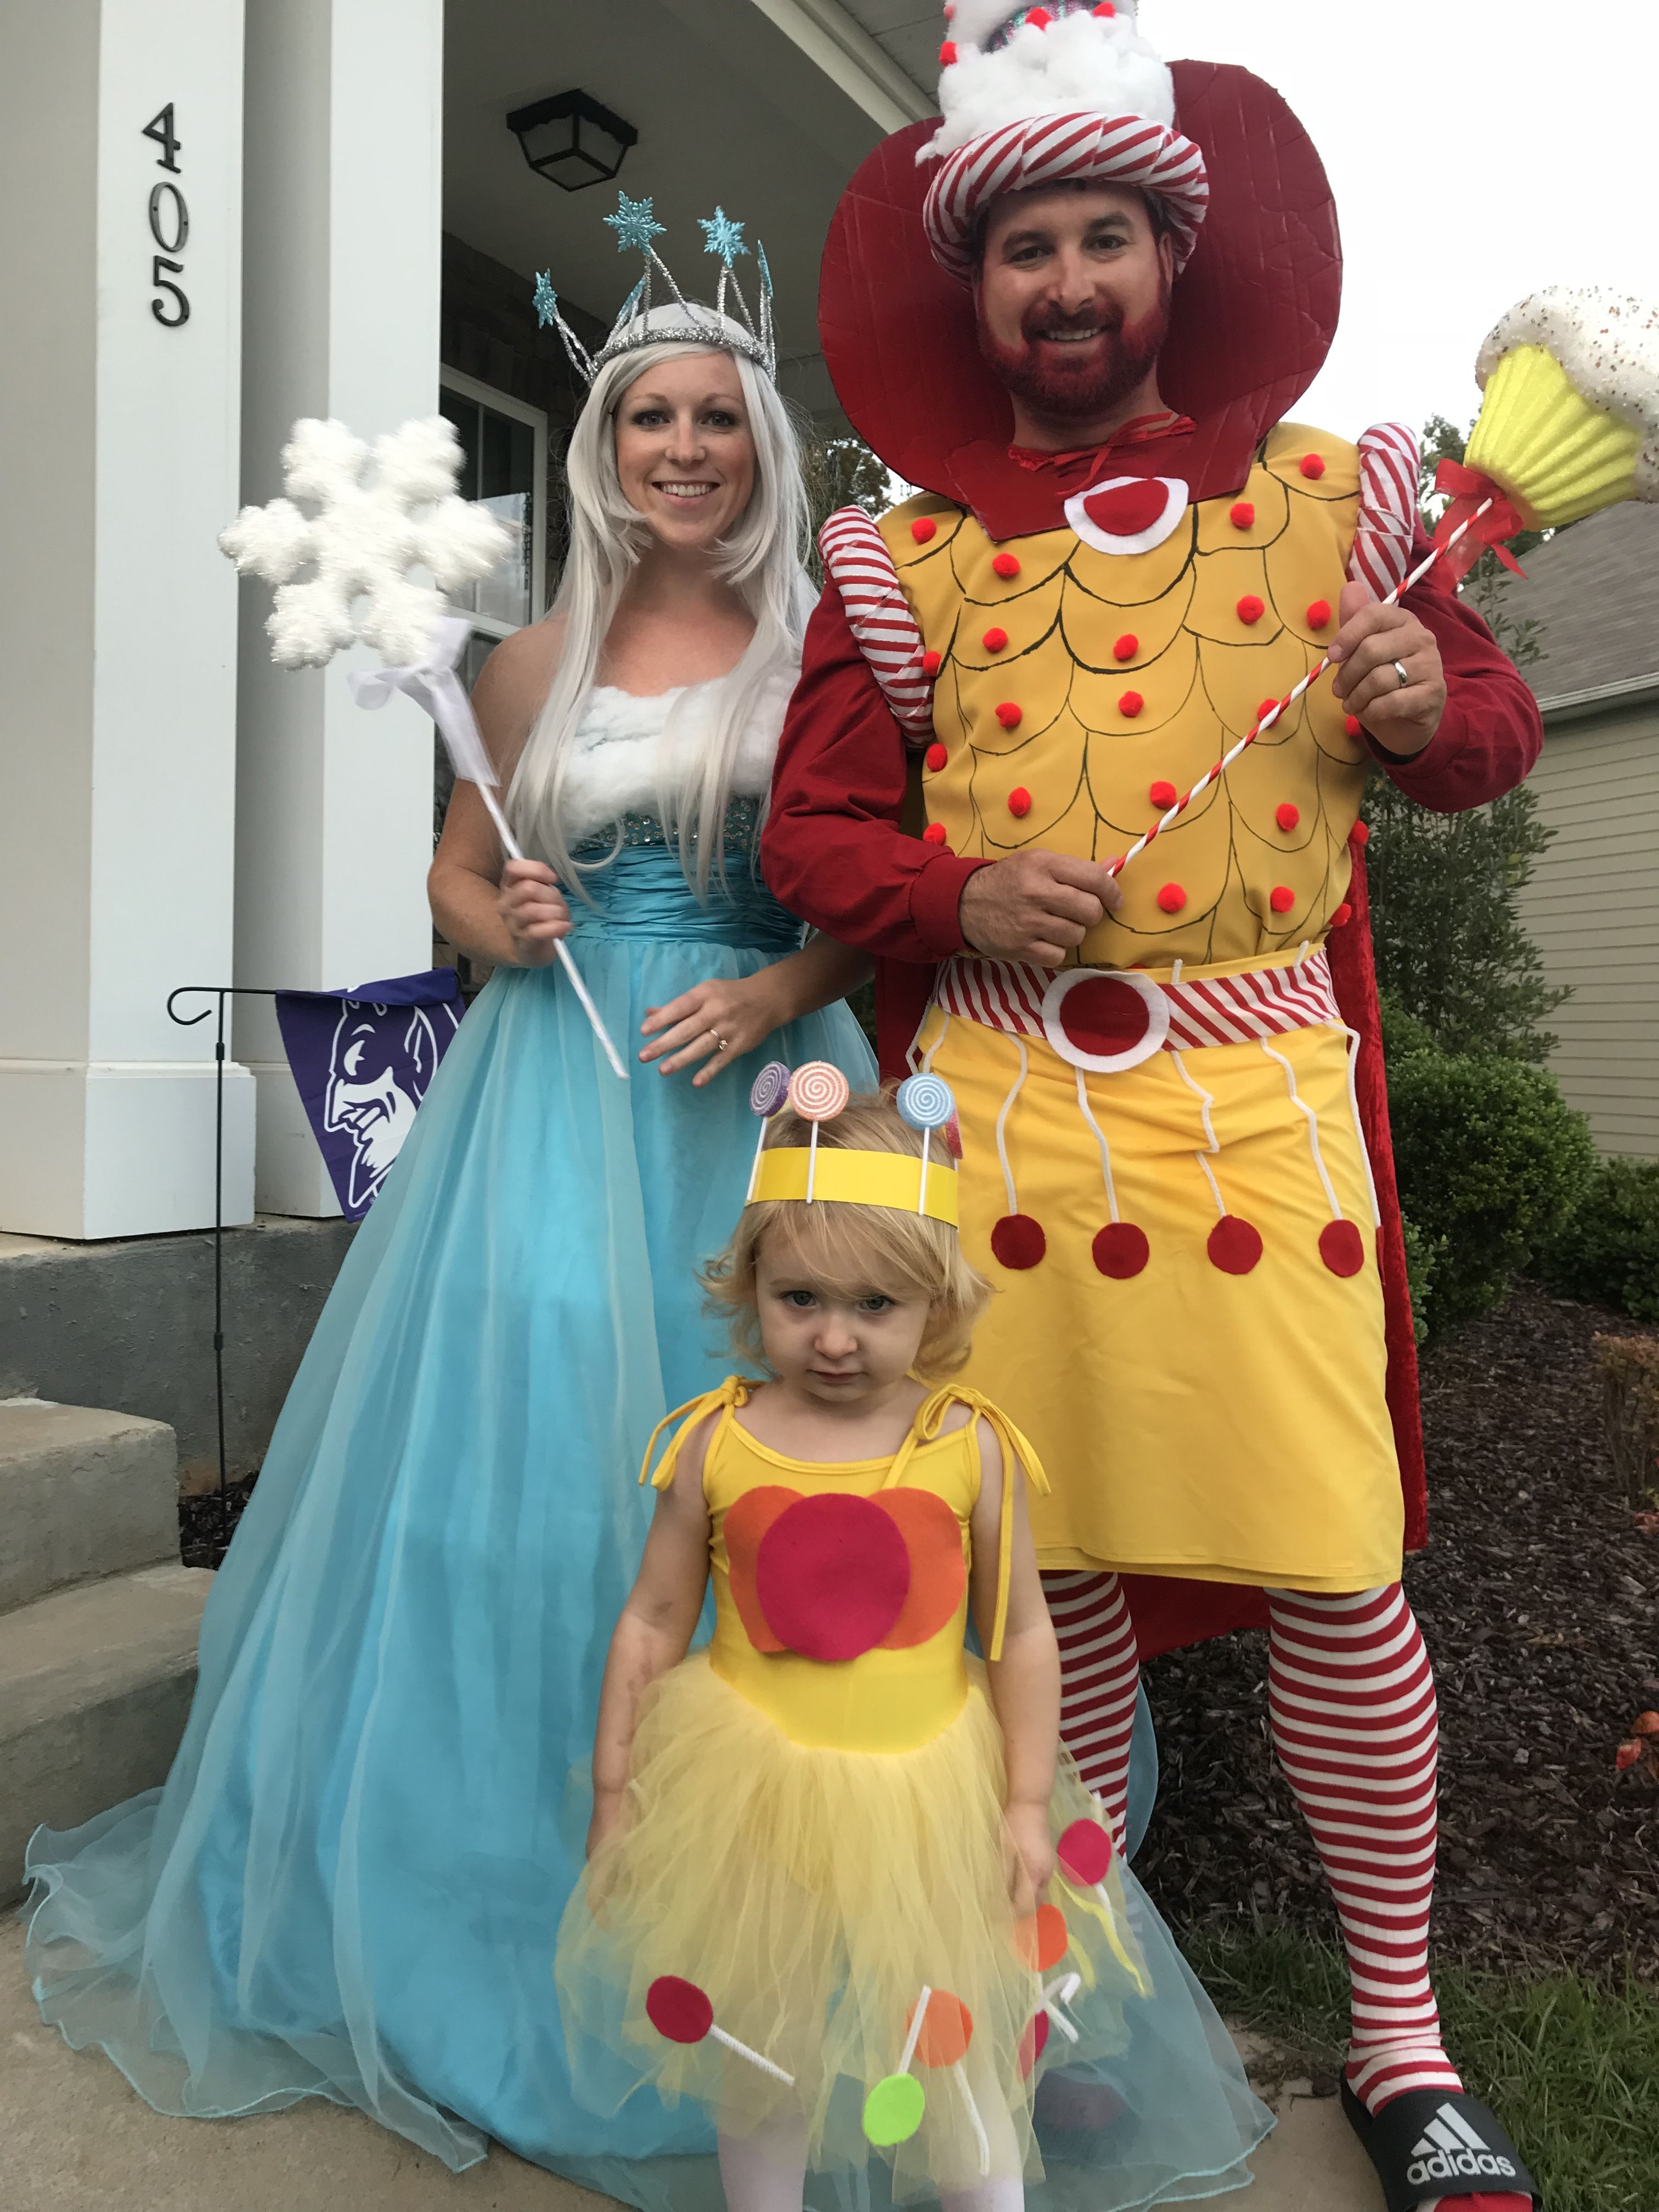 candyland family costume queen frostine king kandy princess lolly 7 tipes to an epic halloween costume